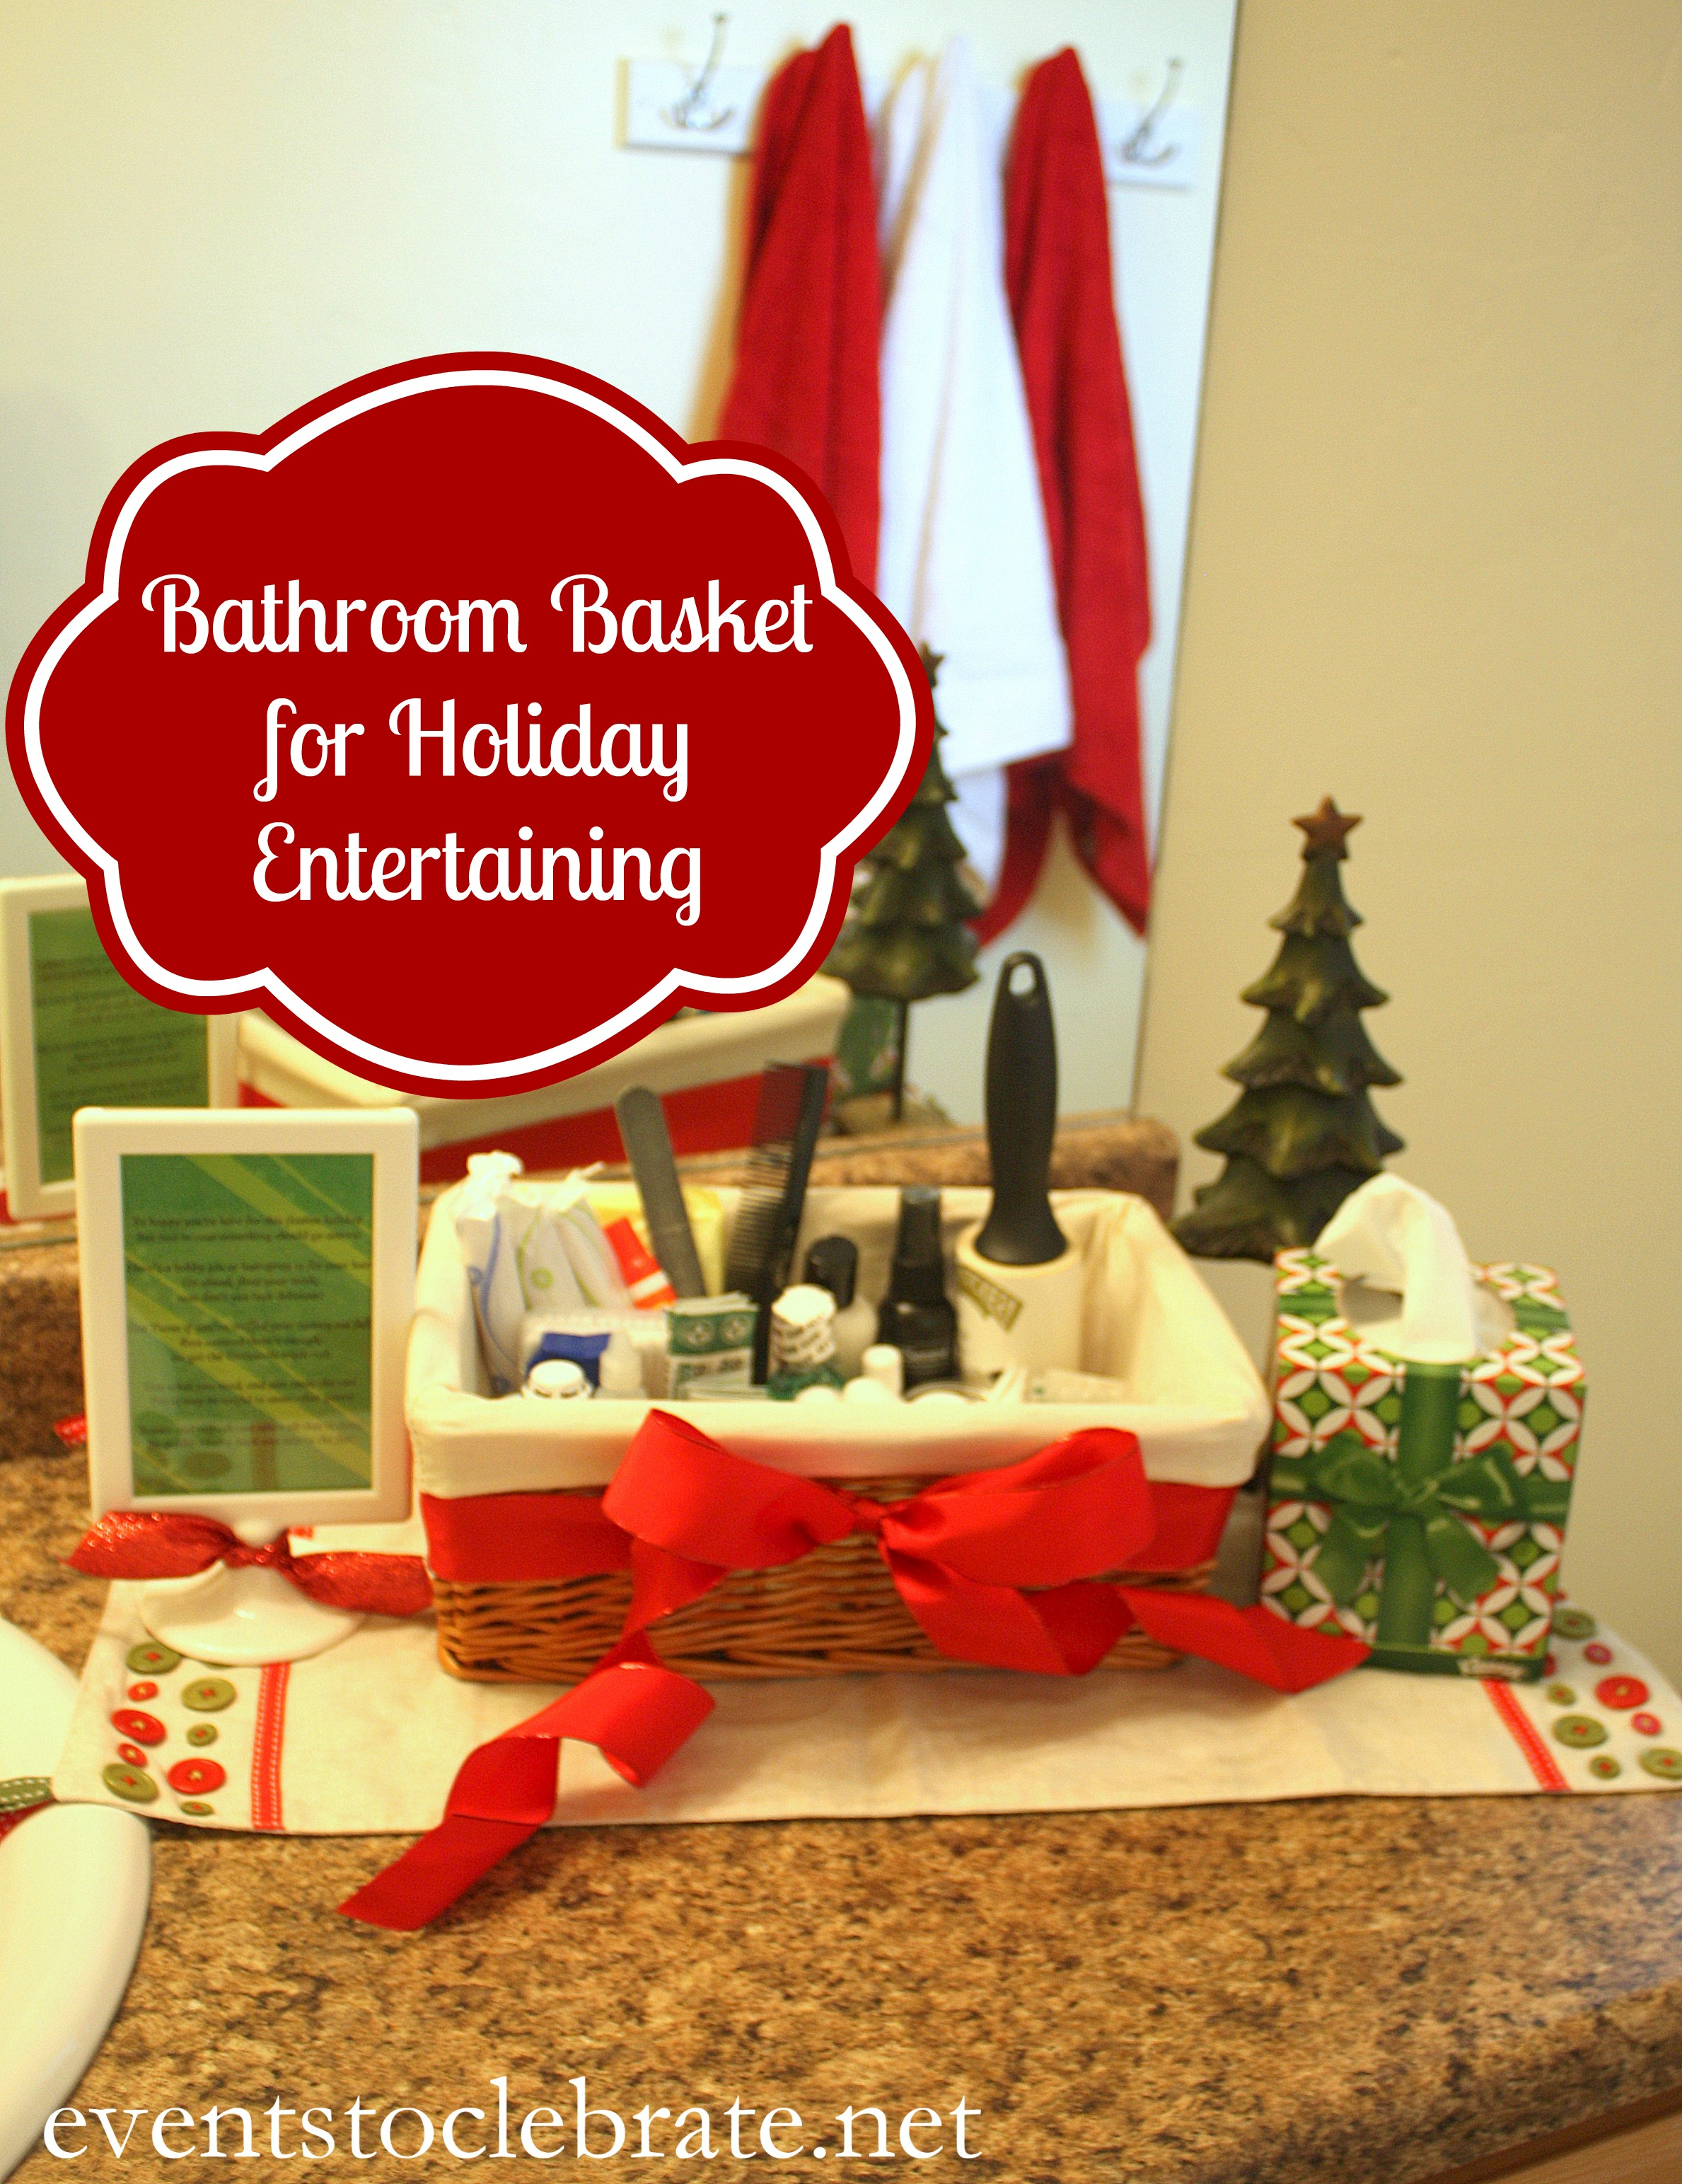 Bathroom Basket for Holiday Entertaining   Events To Celebrate    CottonelleHoliday  pmedia  ad. Bathroom Basket poem Archives   events to CELEBRATE